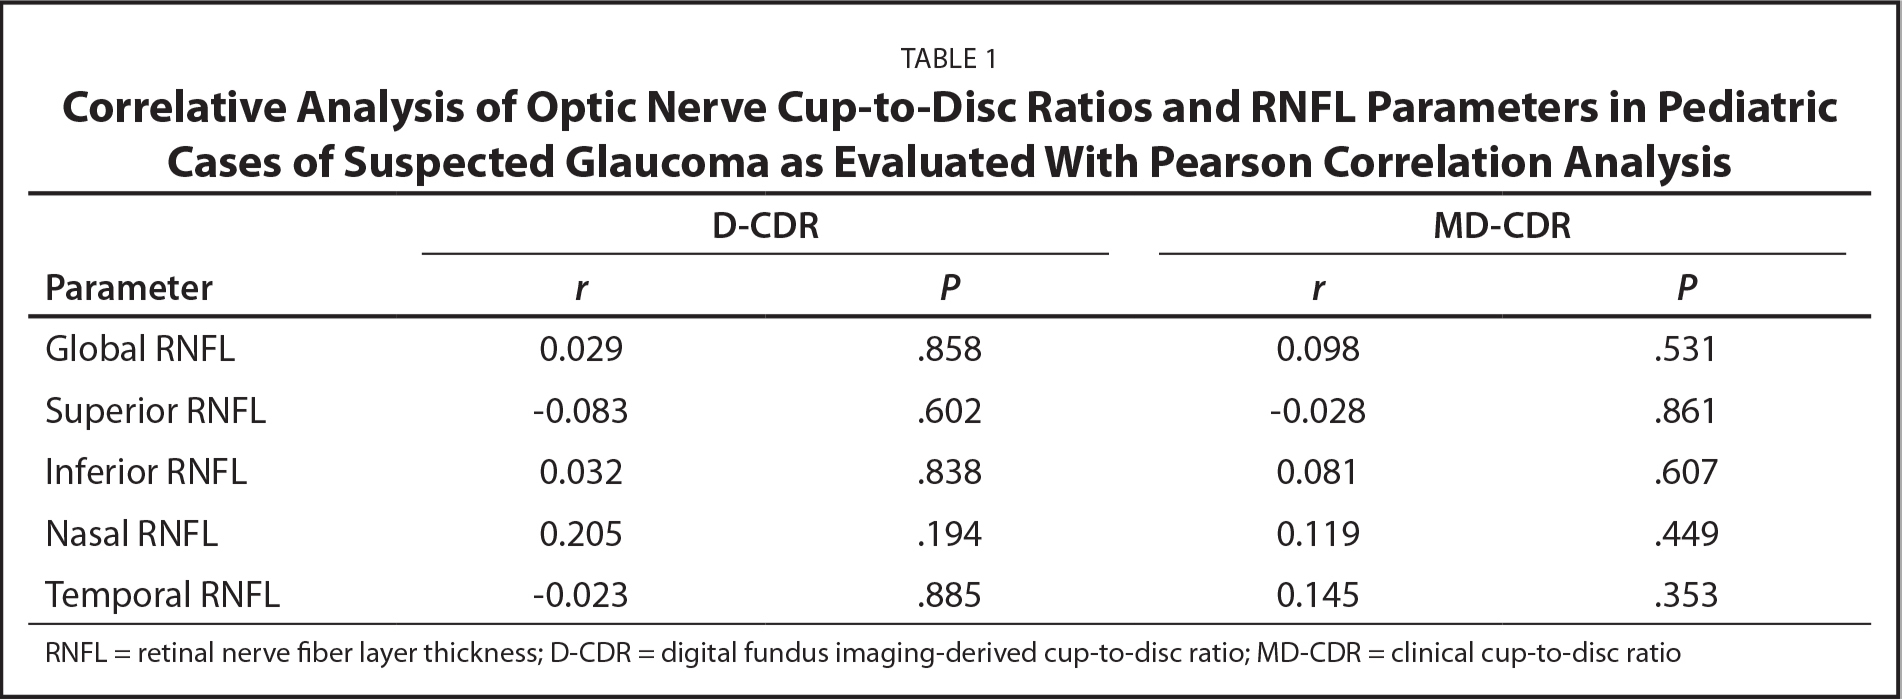 Correlative Analysis of Optic Nerve Cup-to-Disc Ratios and RNFL Parameters in Pediatric Cases of Suspected Glaucoma as Evaluated With Pearson Correlation Analysis